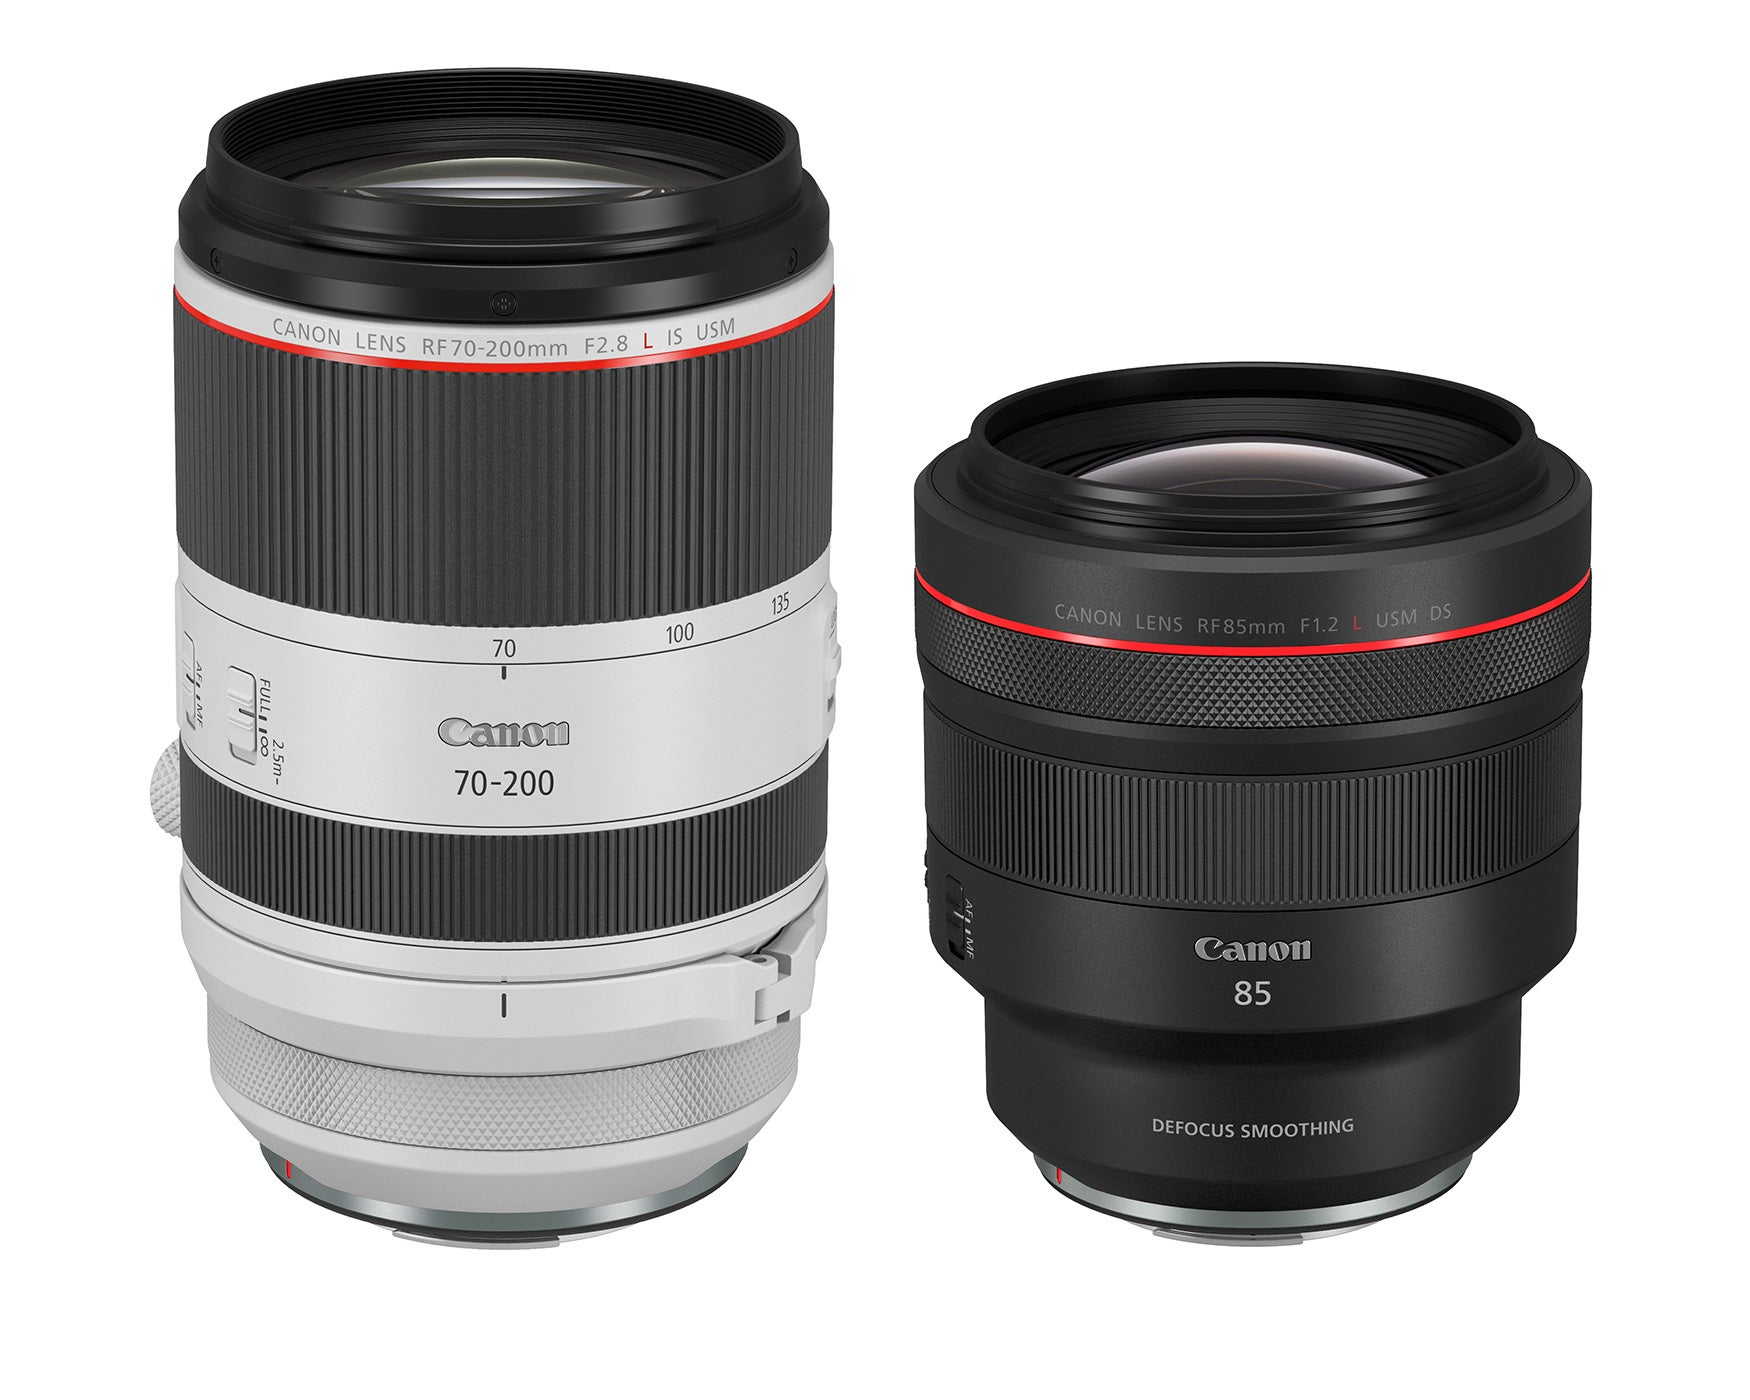 Canon announces two new RF mount lens, the 85mm f/1.2 and the 70-200mm f/2.8